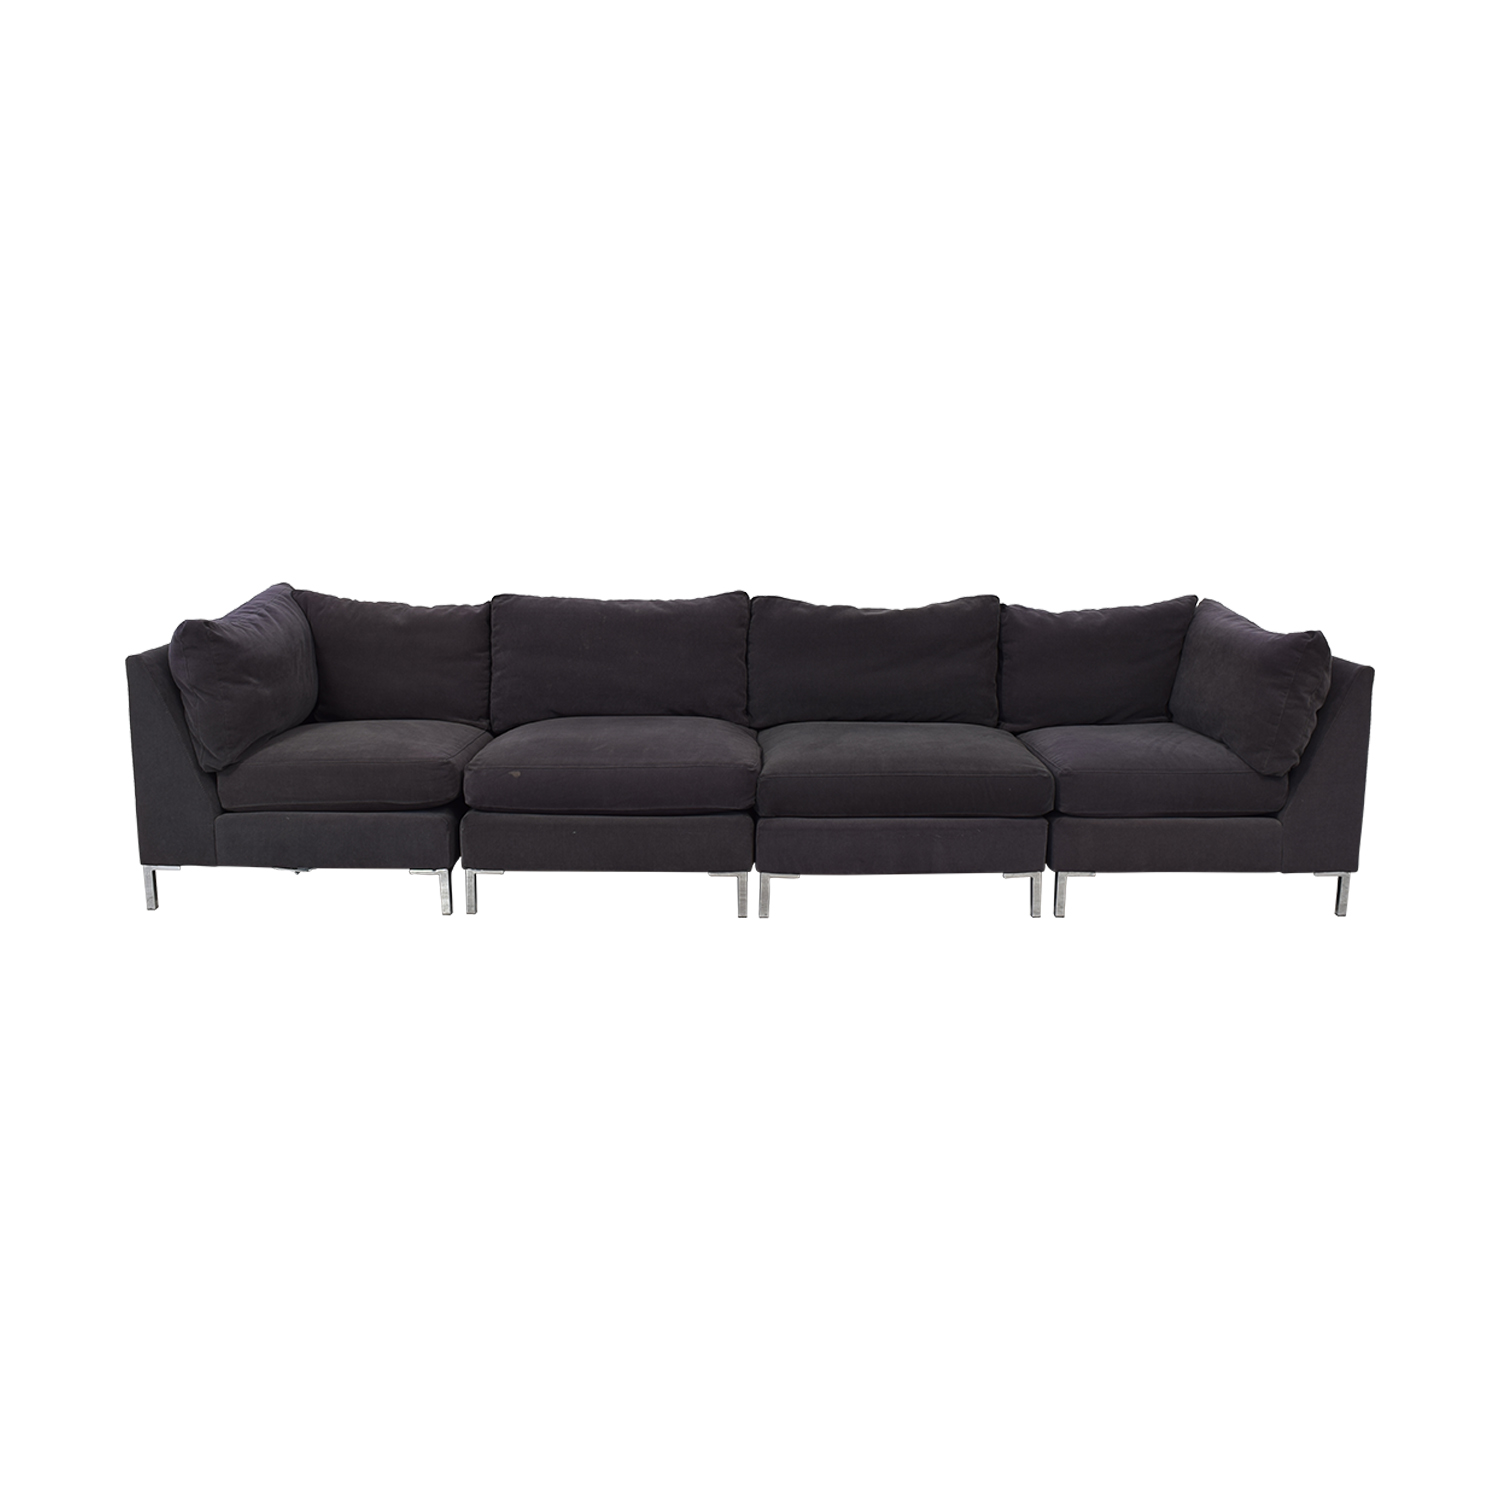 CB2 Modular Sectional Sofa sale